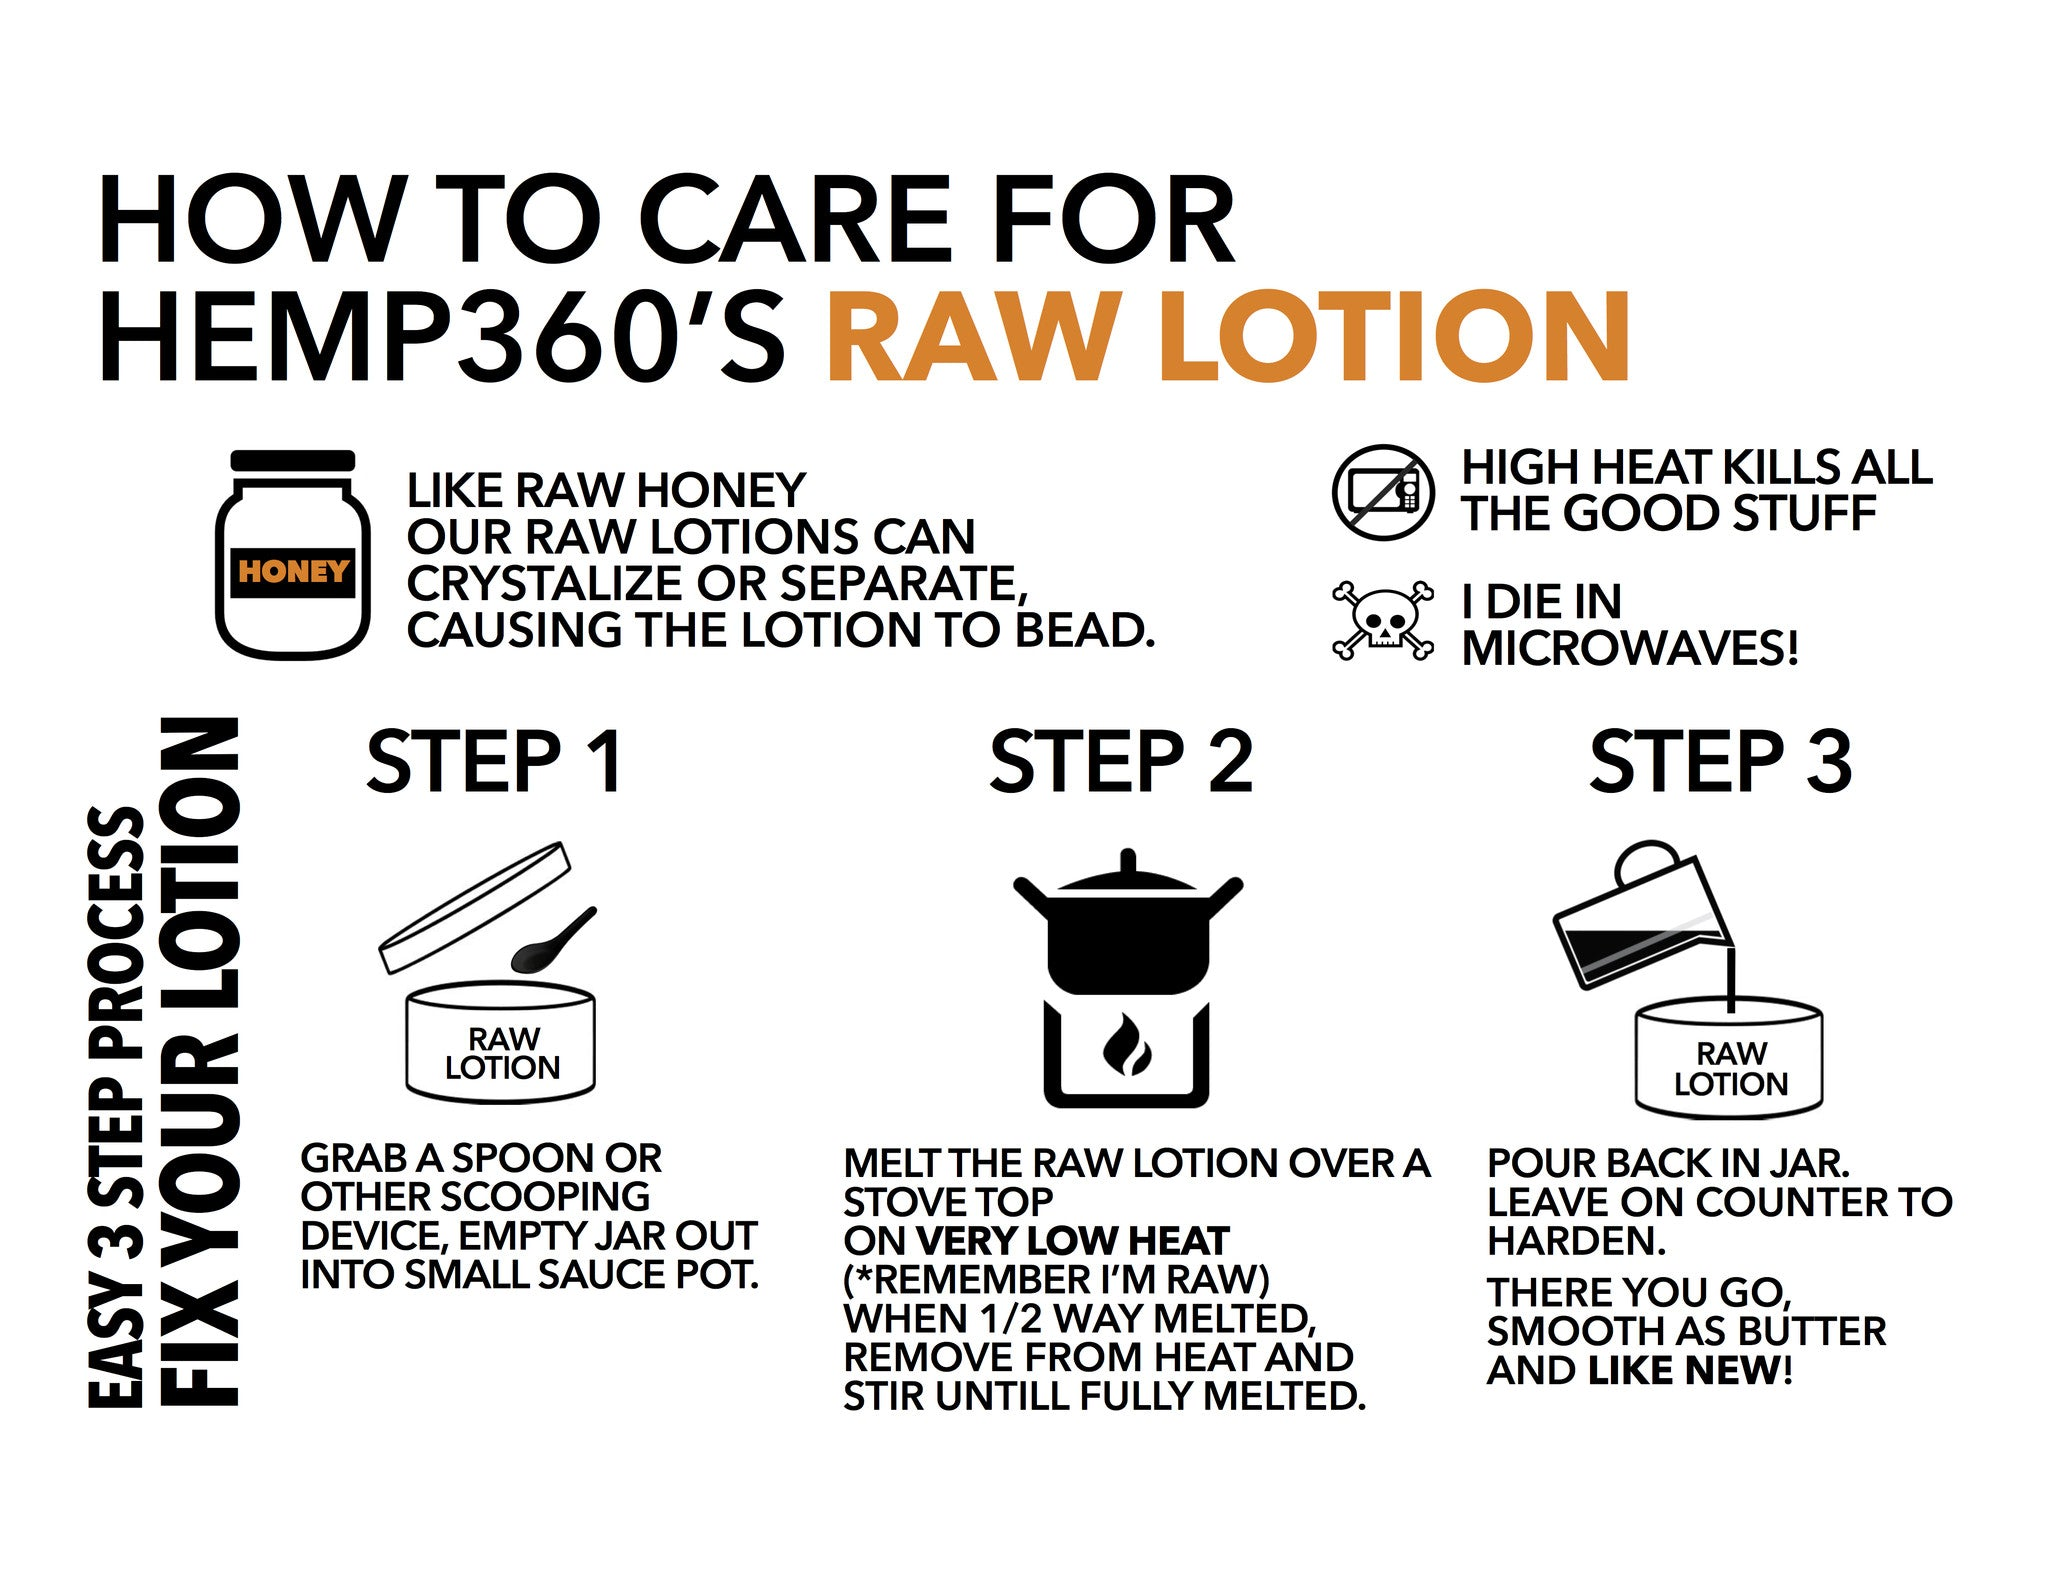 Hemp Extract Revolution Raw Lotion - HEMP360